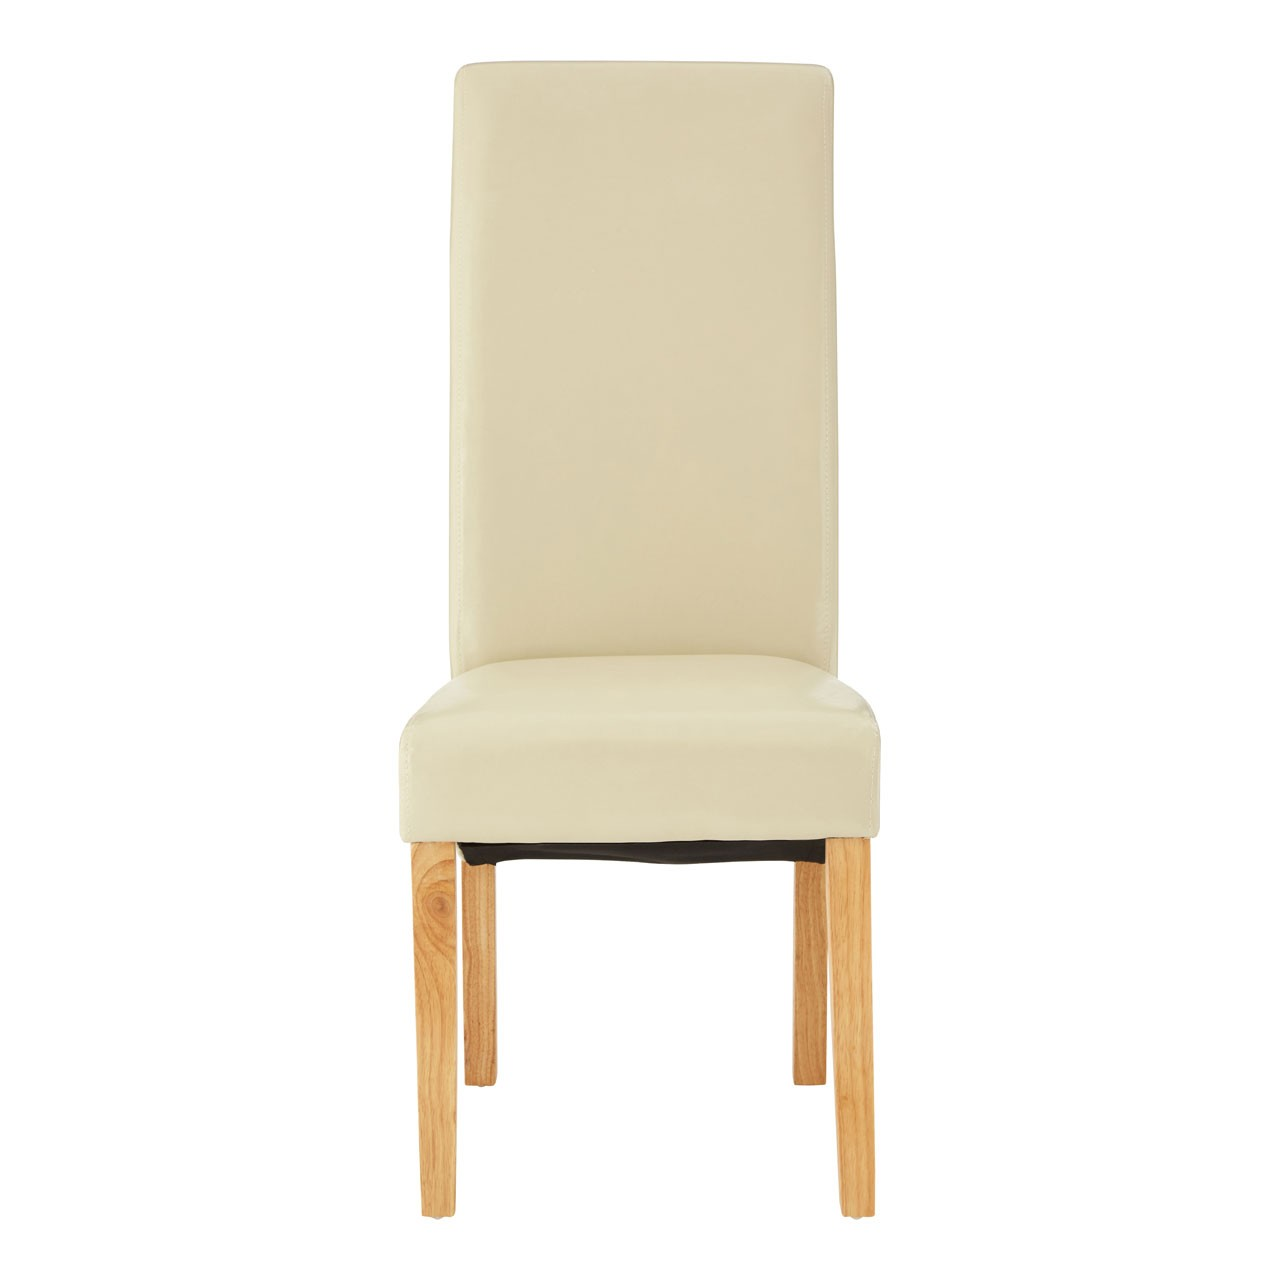 Hertford Chairs - Cream Leather Effect - Set of 2